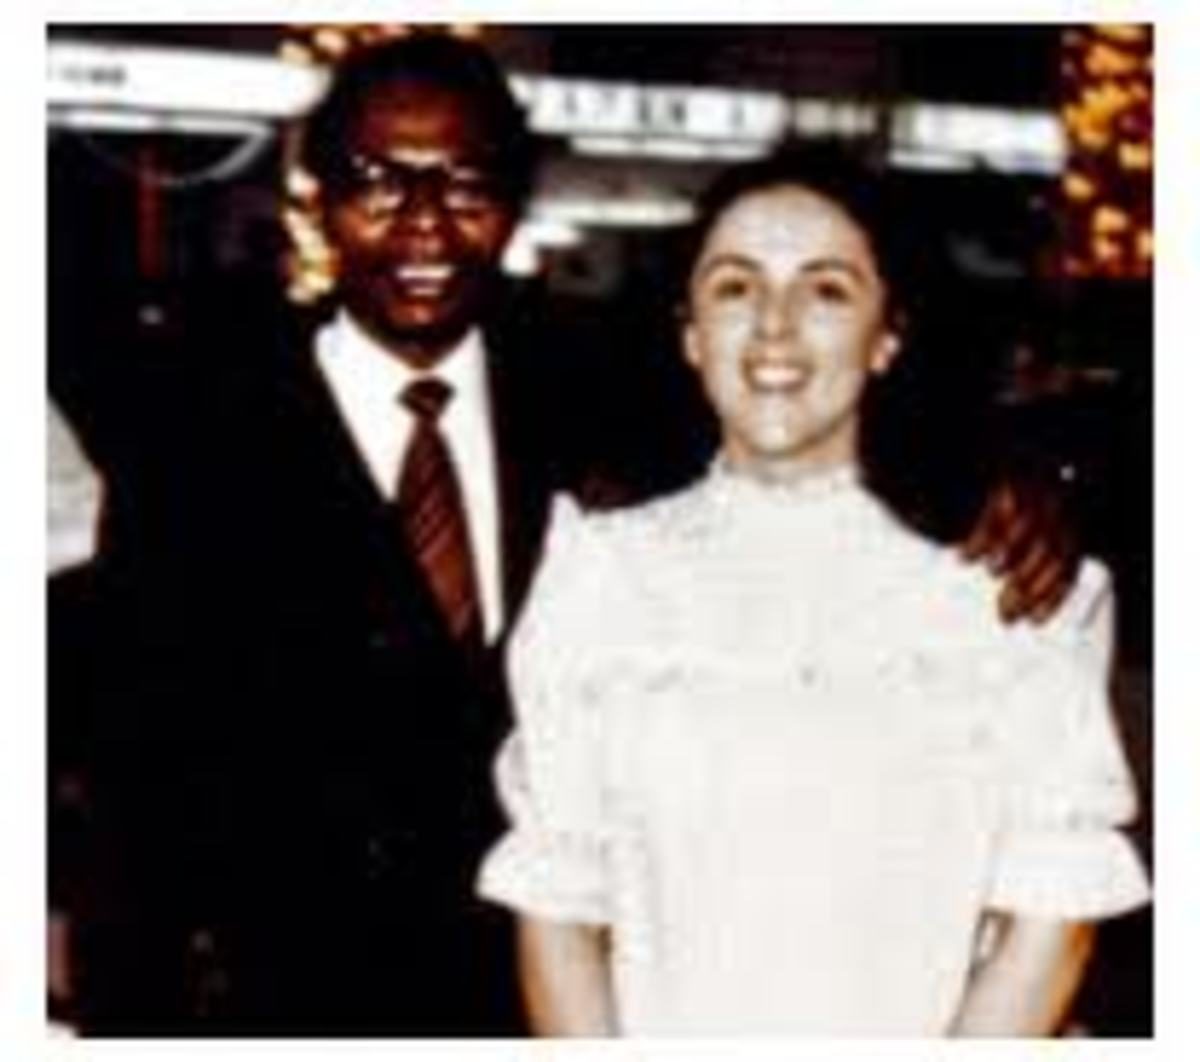 This is the couple that produced the first African-American President of US Barack Obama. He was elected President on November 4 2008. Barack Hussein Obama, a Kenyan met Stanley Ann Dunham whom he married in 1961 and divorced her 3 years later.